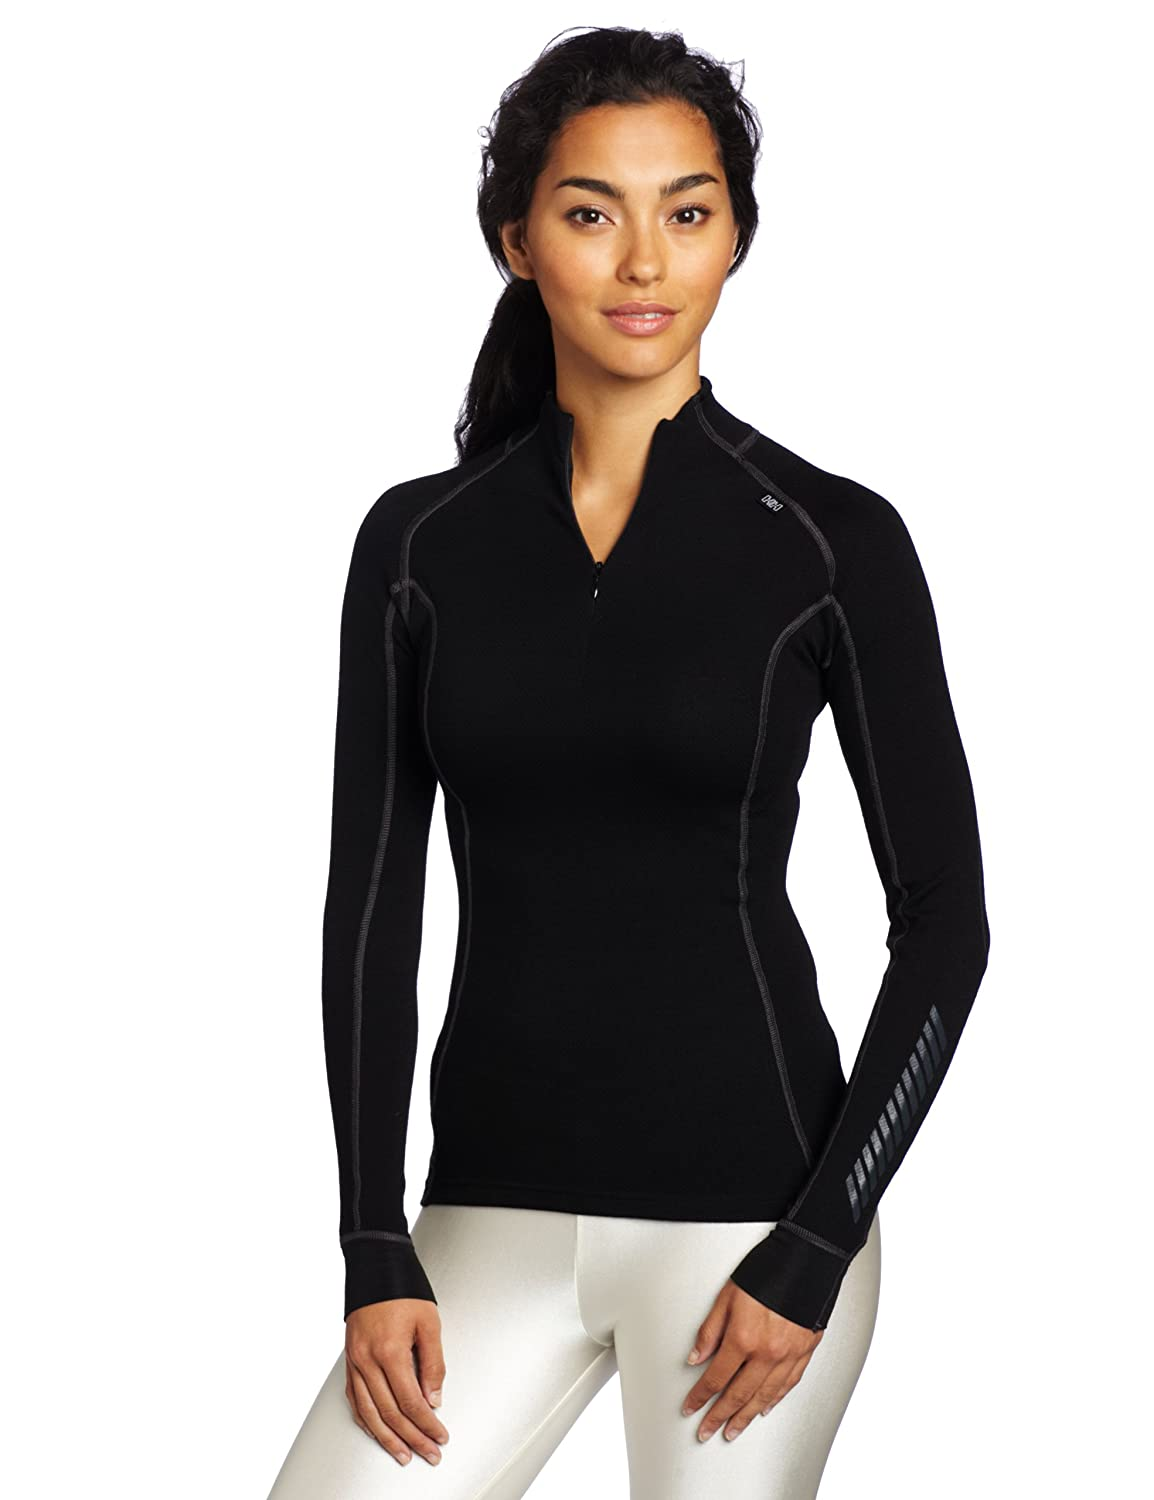 Camiseta para mujer Helly Hansen W HH Warm Freeze 1//2 Zip